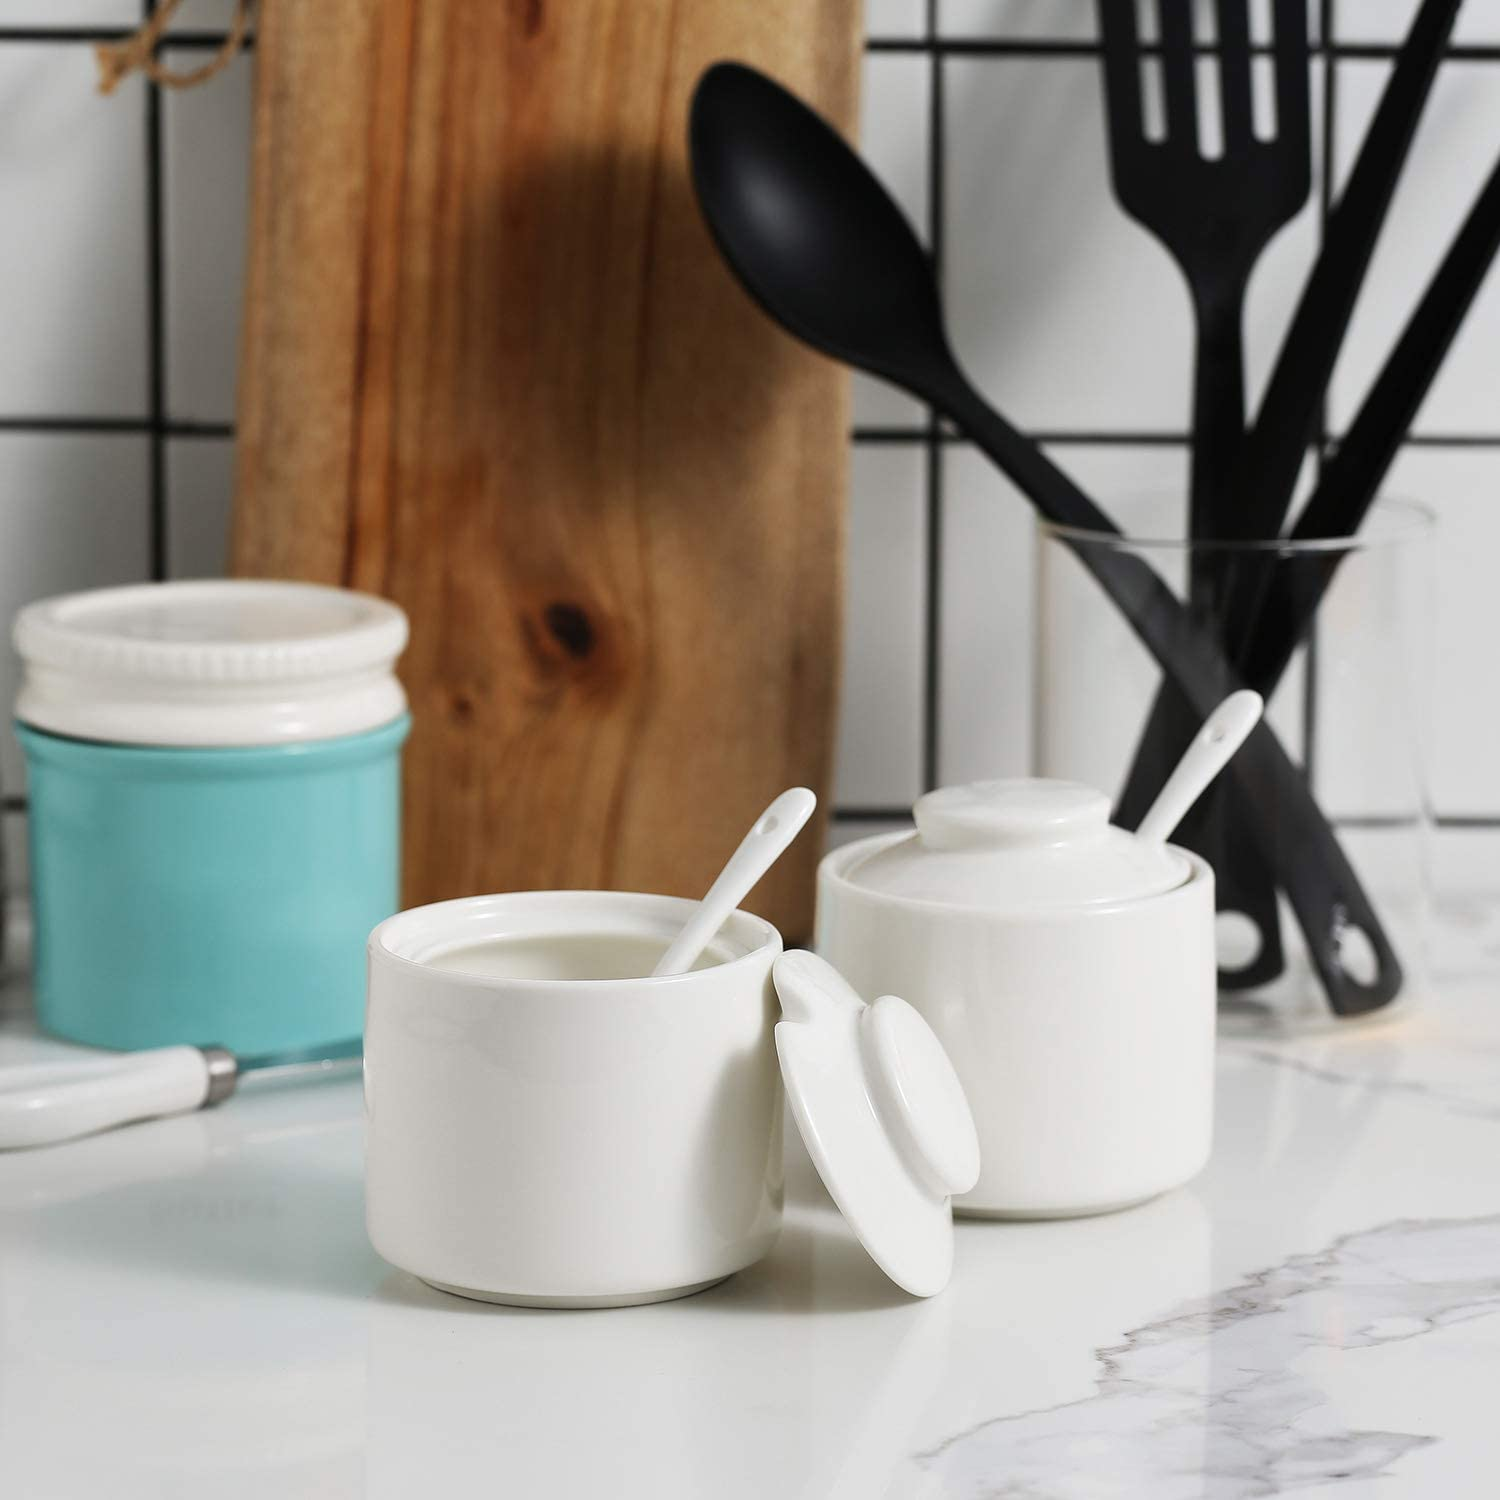 Sugar Bowl with Lid,White ONTUBE Porcelain Sugar and Creamer Set of 3,Cream Pitcher Spoon